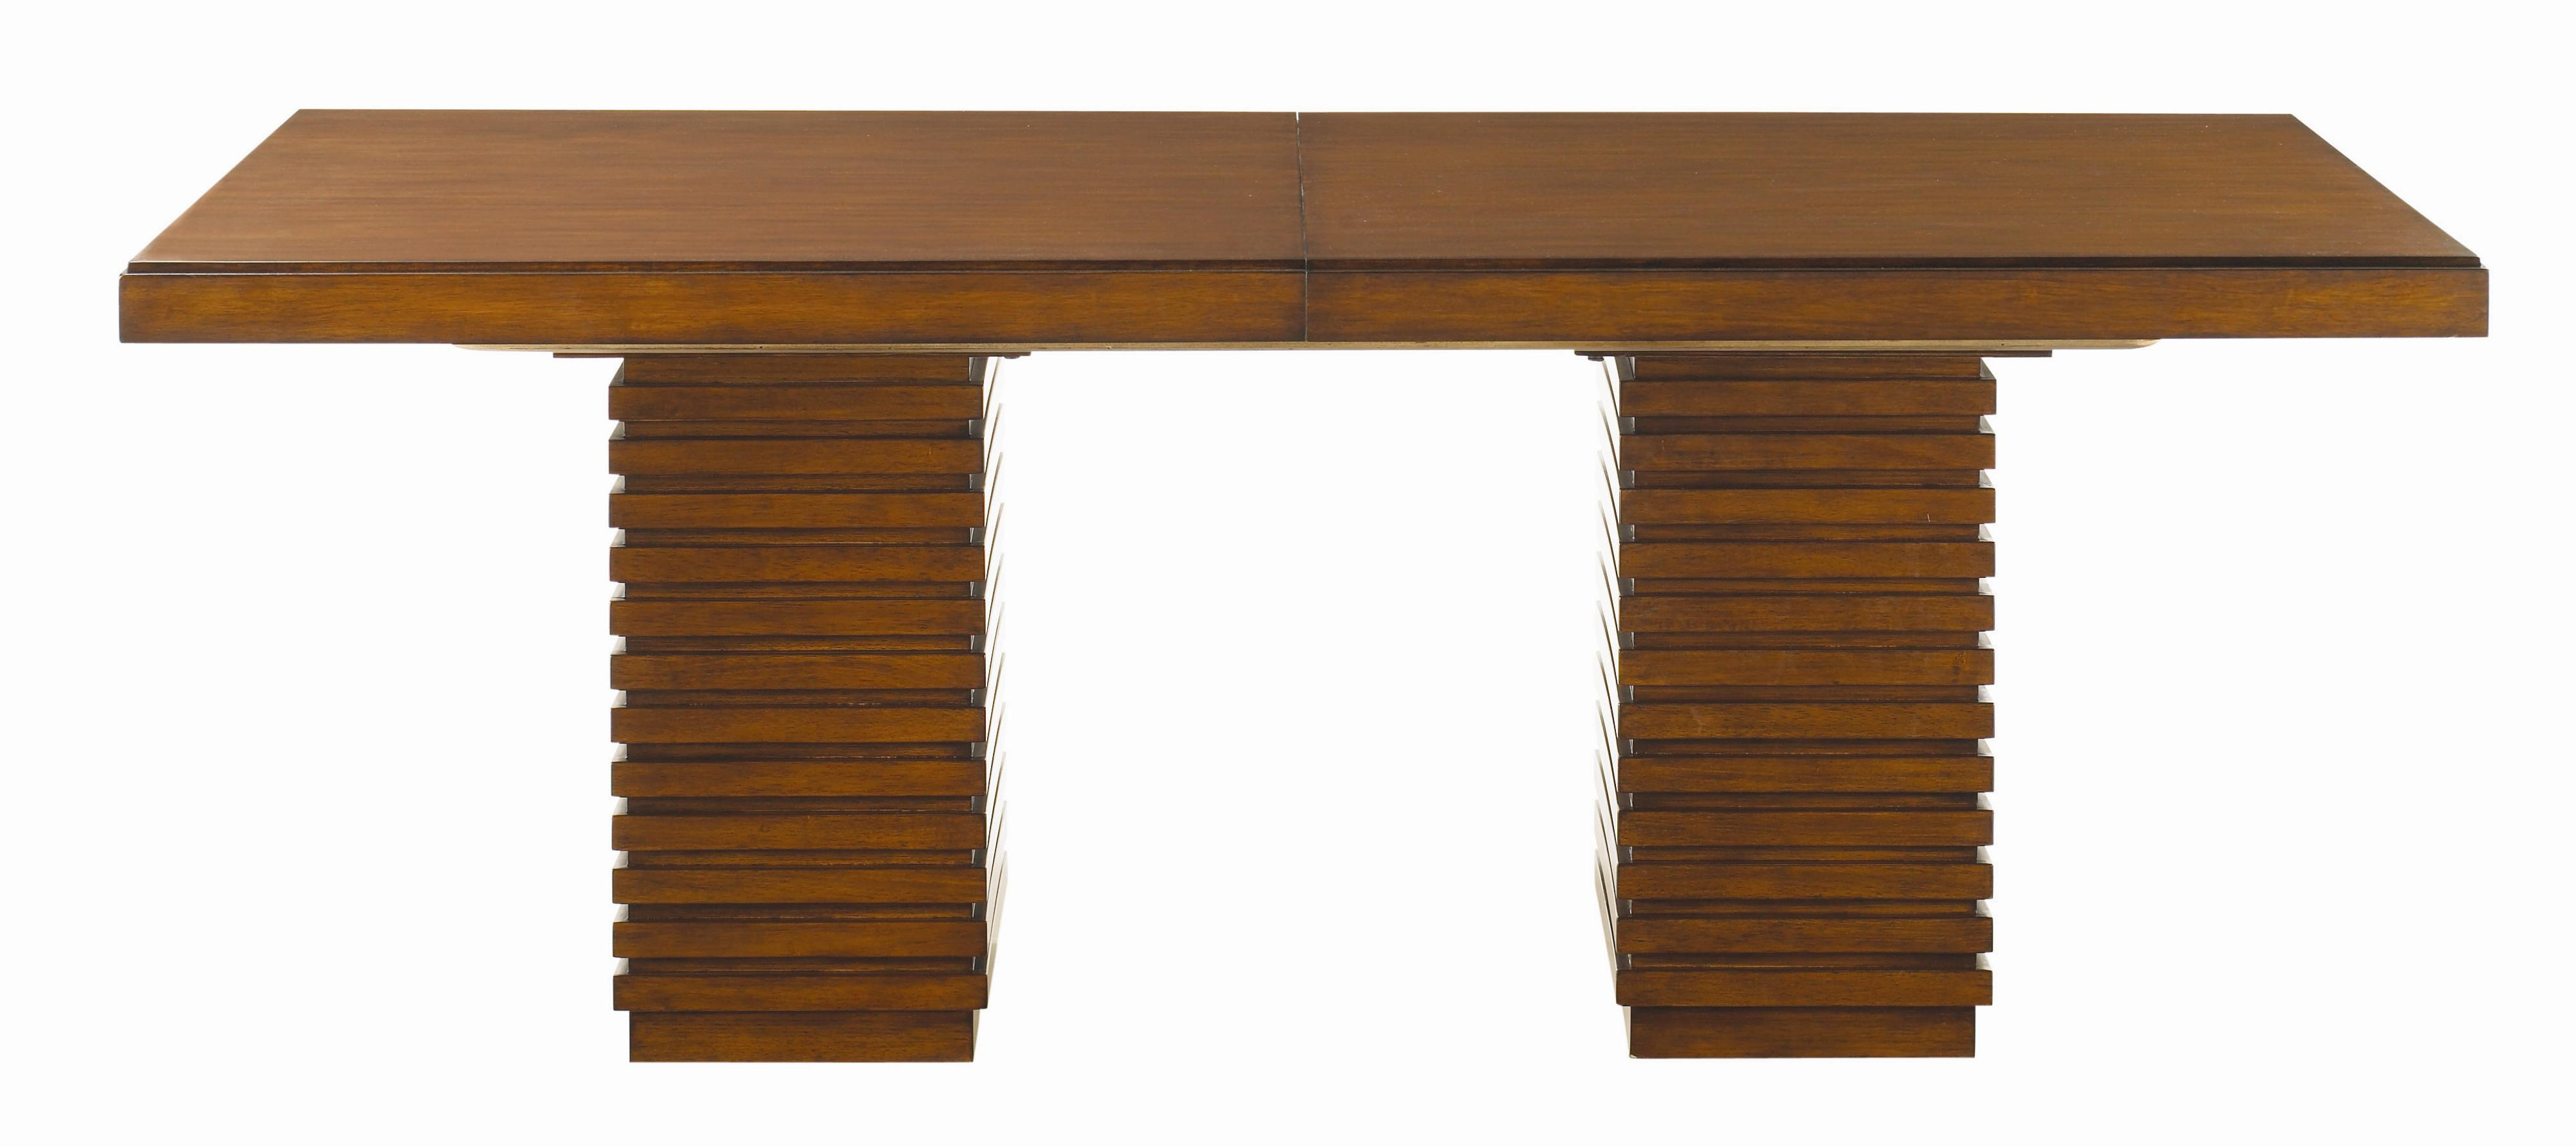 Ocean Club Peninsula Dining Table by Tommy Bahama Home at Baer's Furniture